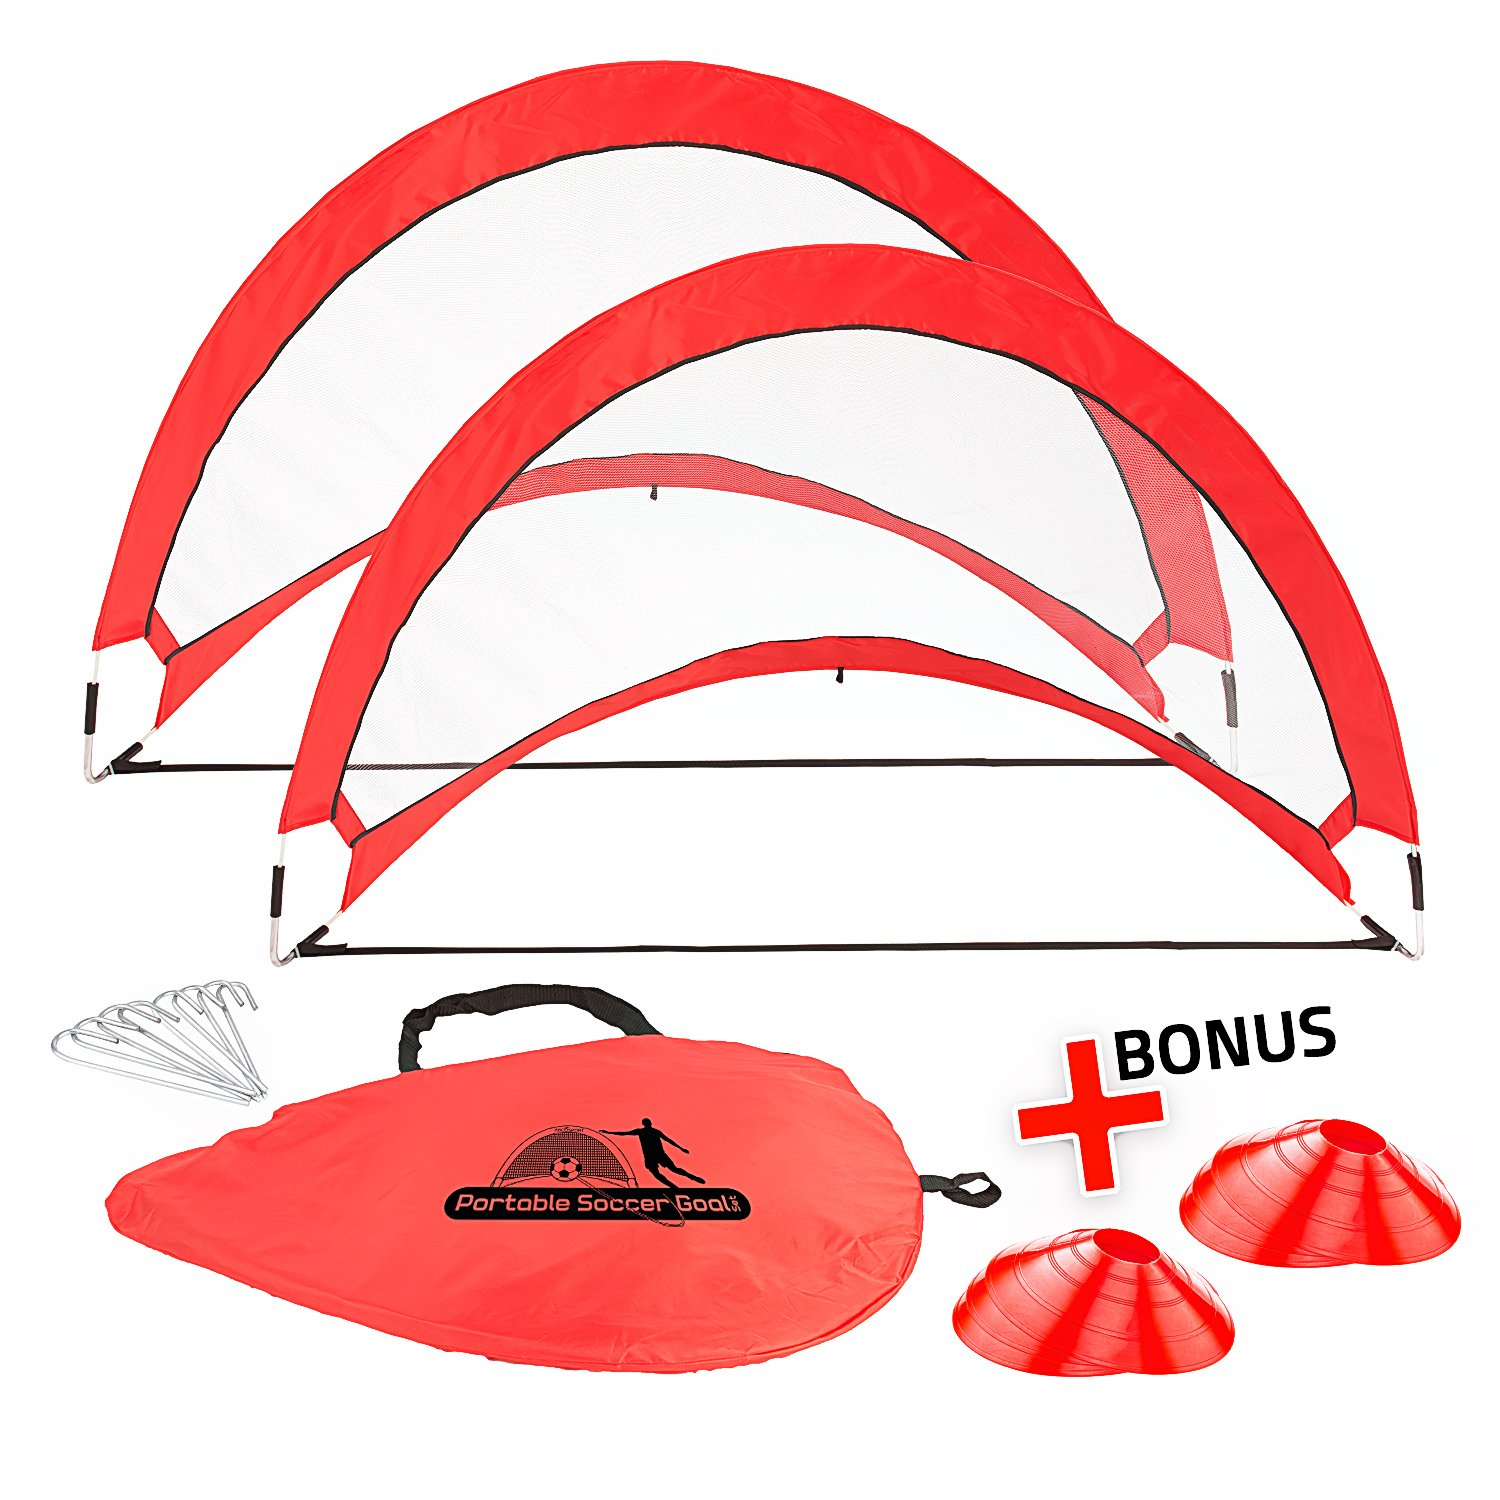 Abco Tech Portable Soccer Goal Set for Training, Practice & Game – Pop-up Soccer Net – 2 Soccer Goals, 6 Disc Cones & 8 Spikes – Carry Bag – Easy to Assemble & Store – Be it Backyard or Public Fields by Abco Tech (Image #9)